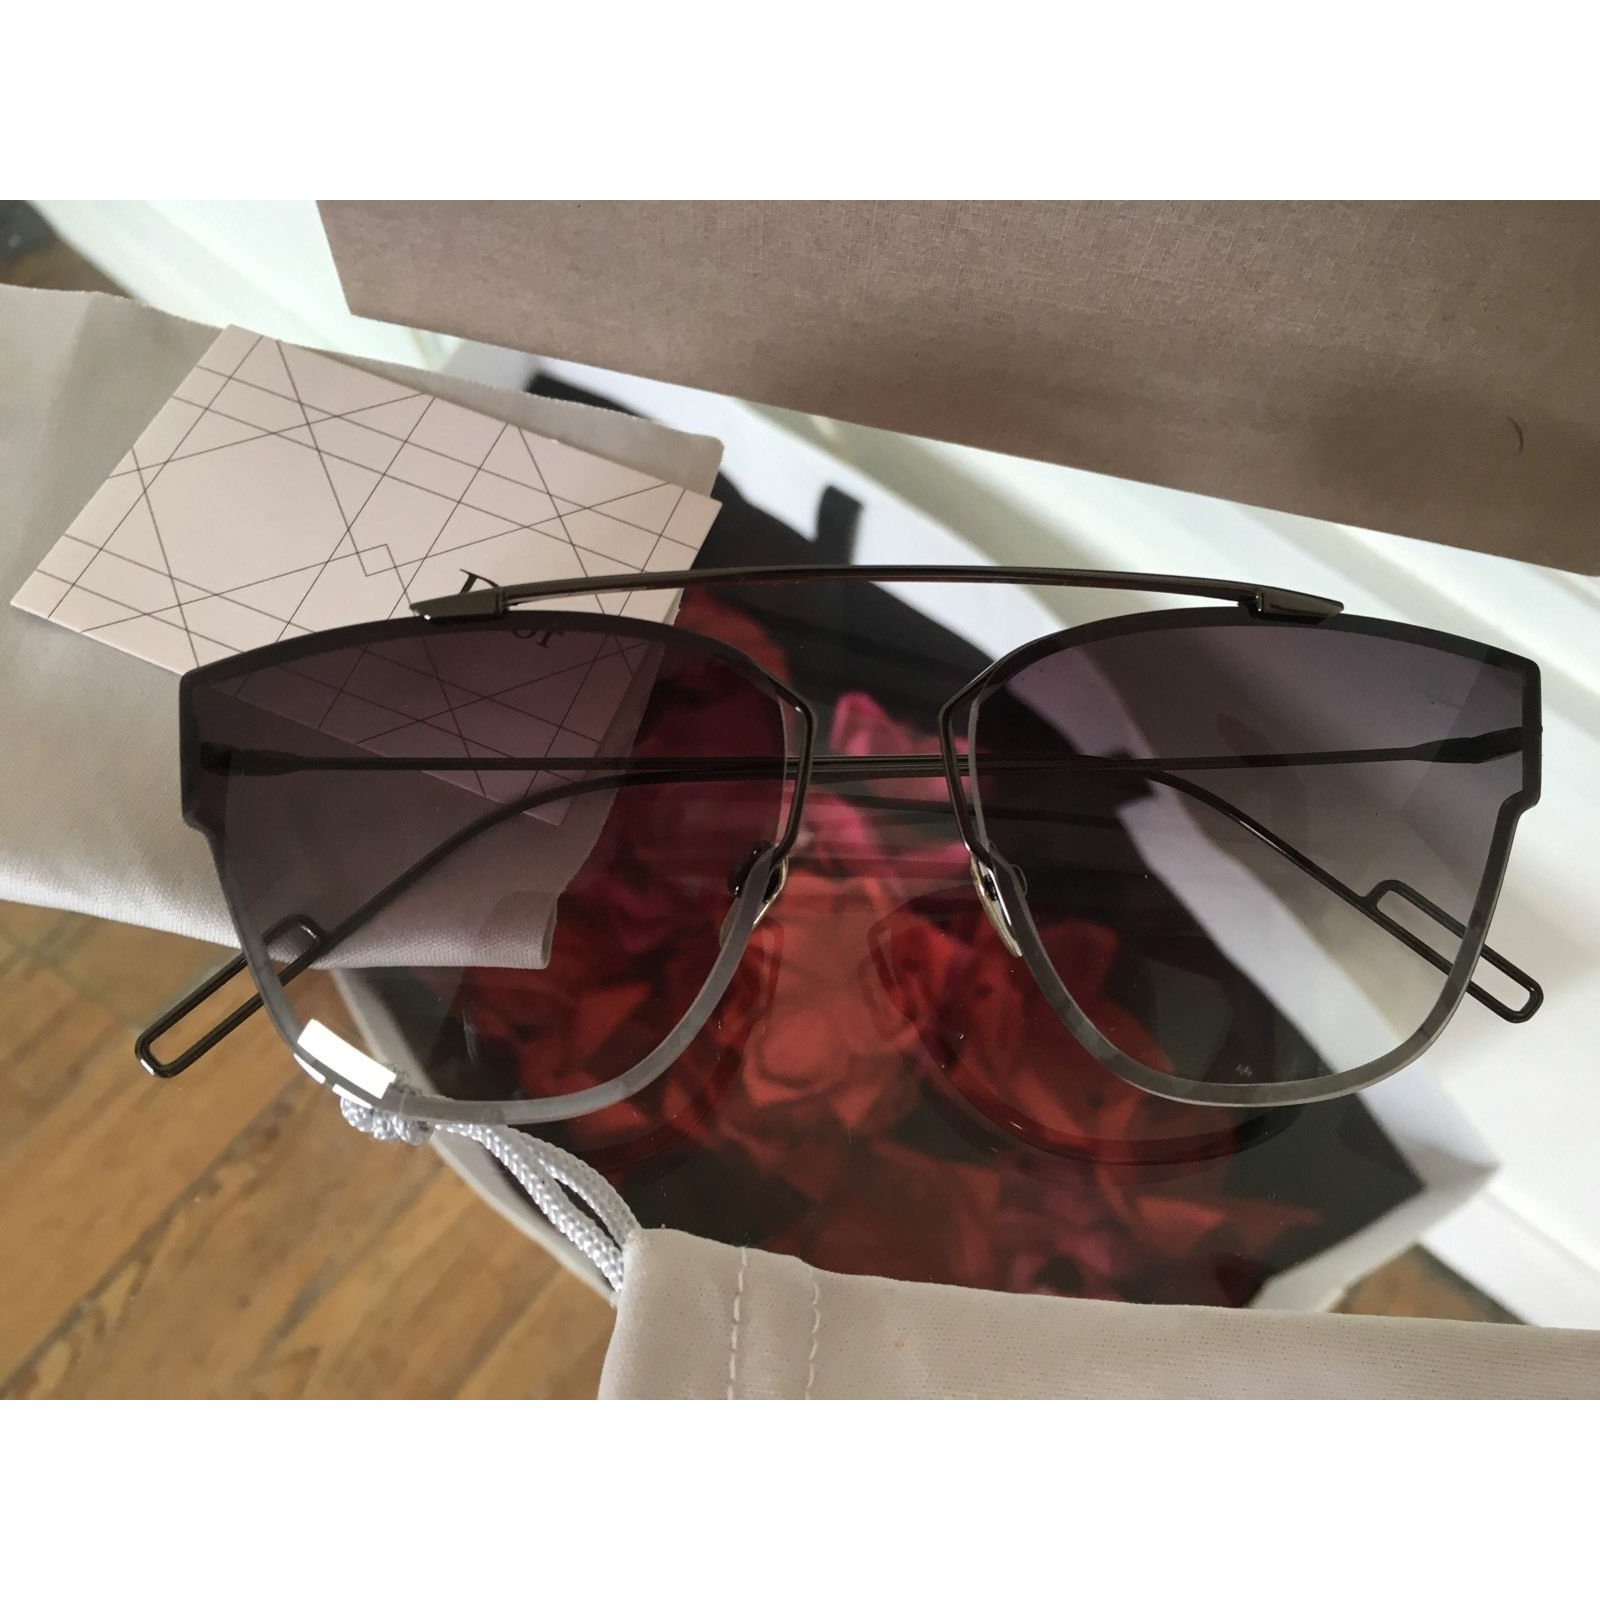 f6abfa30aacb Facebook · Pin This. Christian Dior Sunglasses Sunglasses Metal Grey ref. 23126